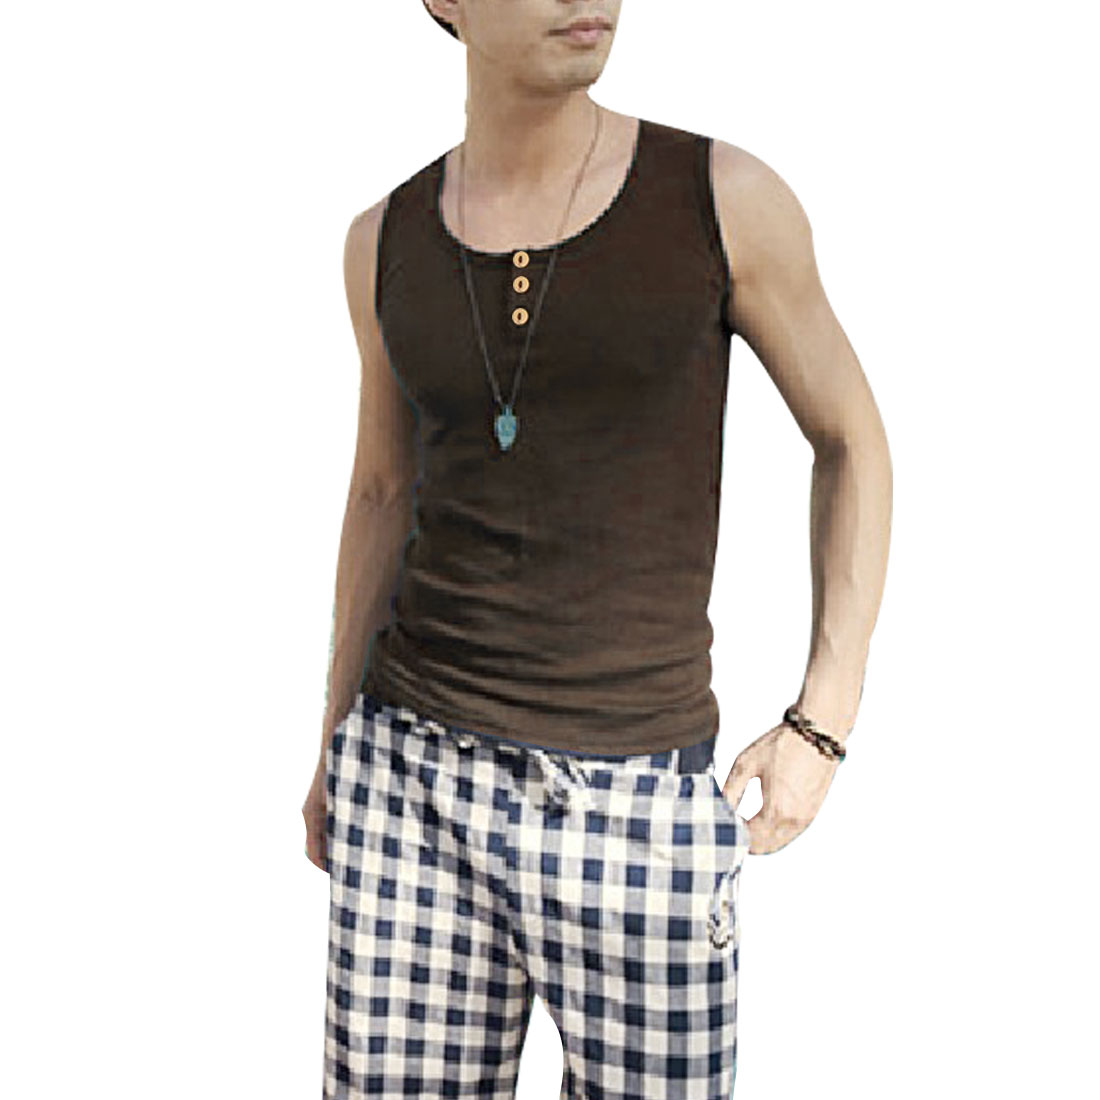 Mens Chic Scoop Neck Button Front Decor Slim Fit Brown Tank Top S